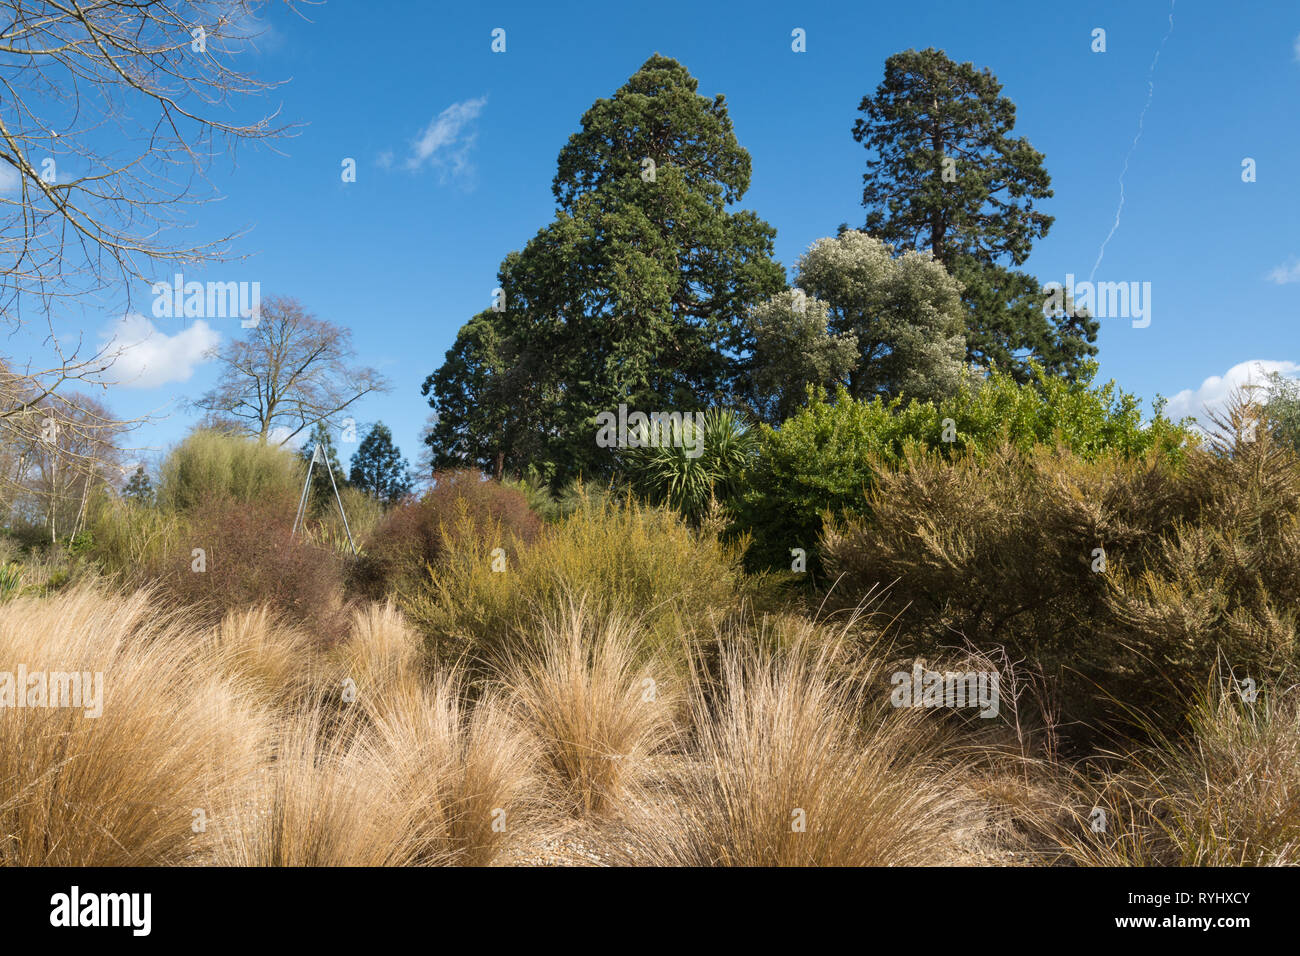 View of the New Zealand garden area in Savill Garden on the Surrey/Berkshire border, UK, during March - Stock Image